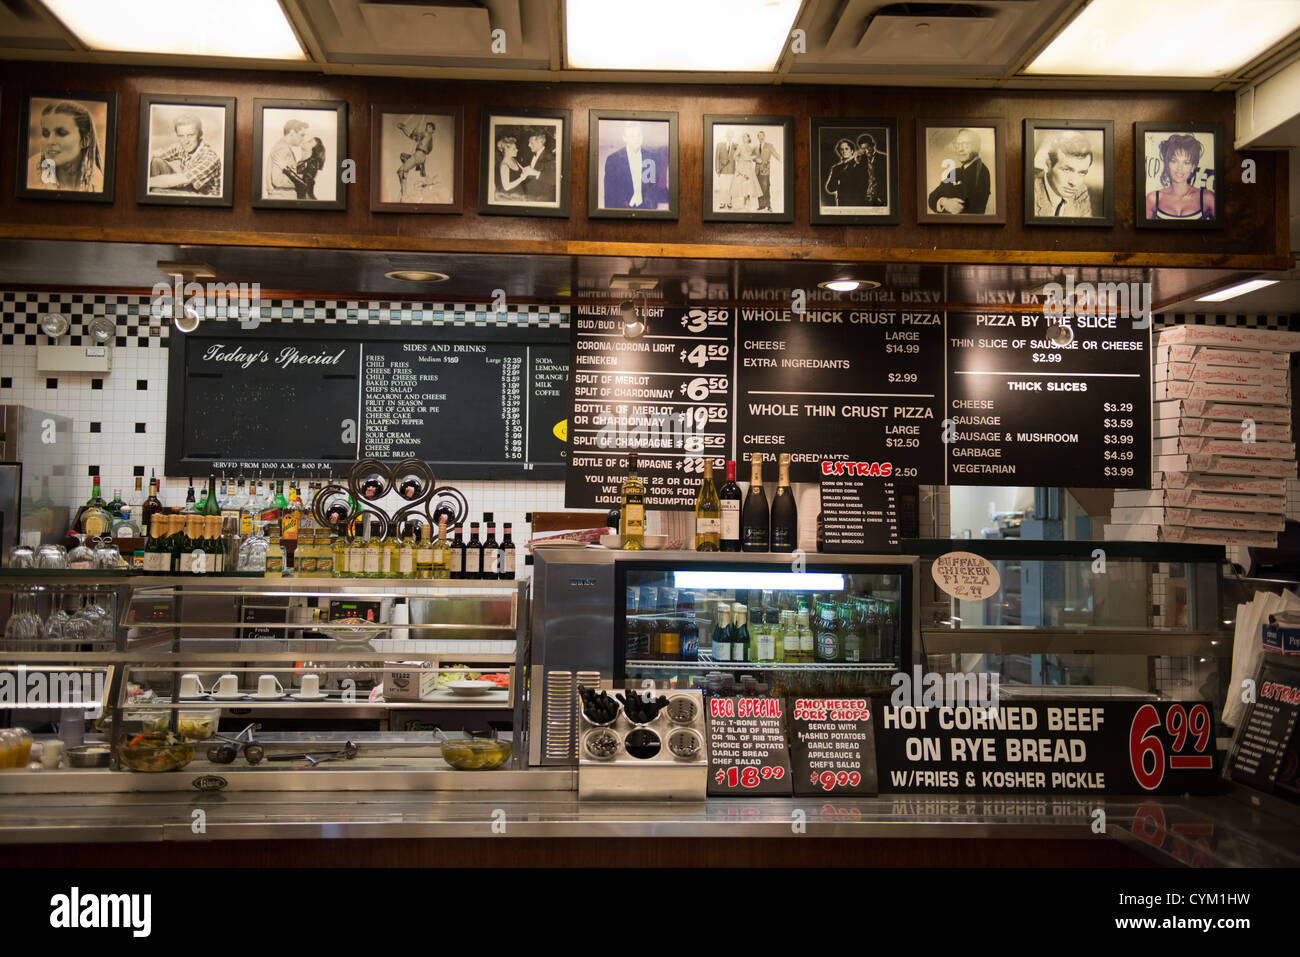 Steakhouse Chicago Stock Photos & Steakhouse Chicago Stock Images ...